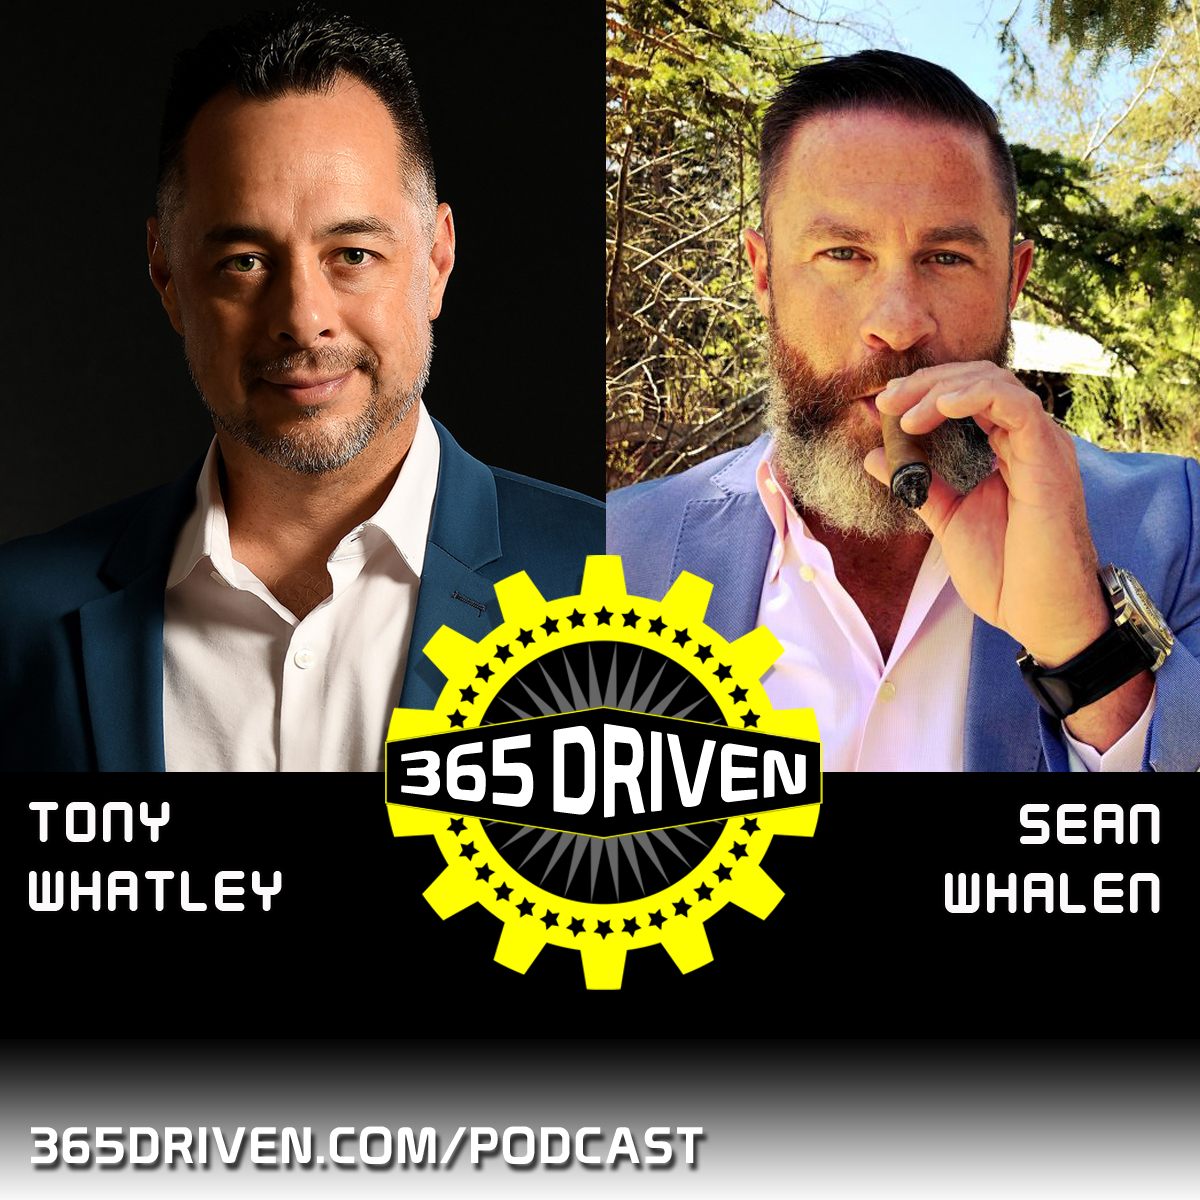 Millions Of Sheep And So Few Lions - With Sean Whalen - EP0092 show art